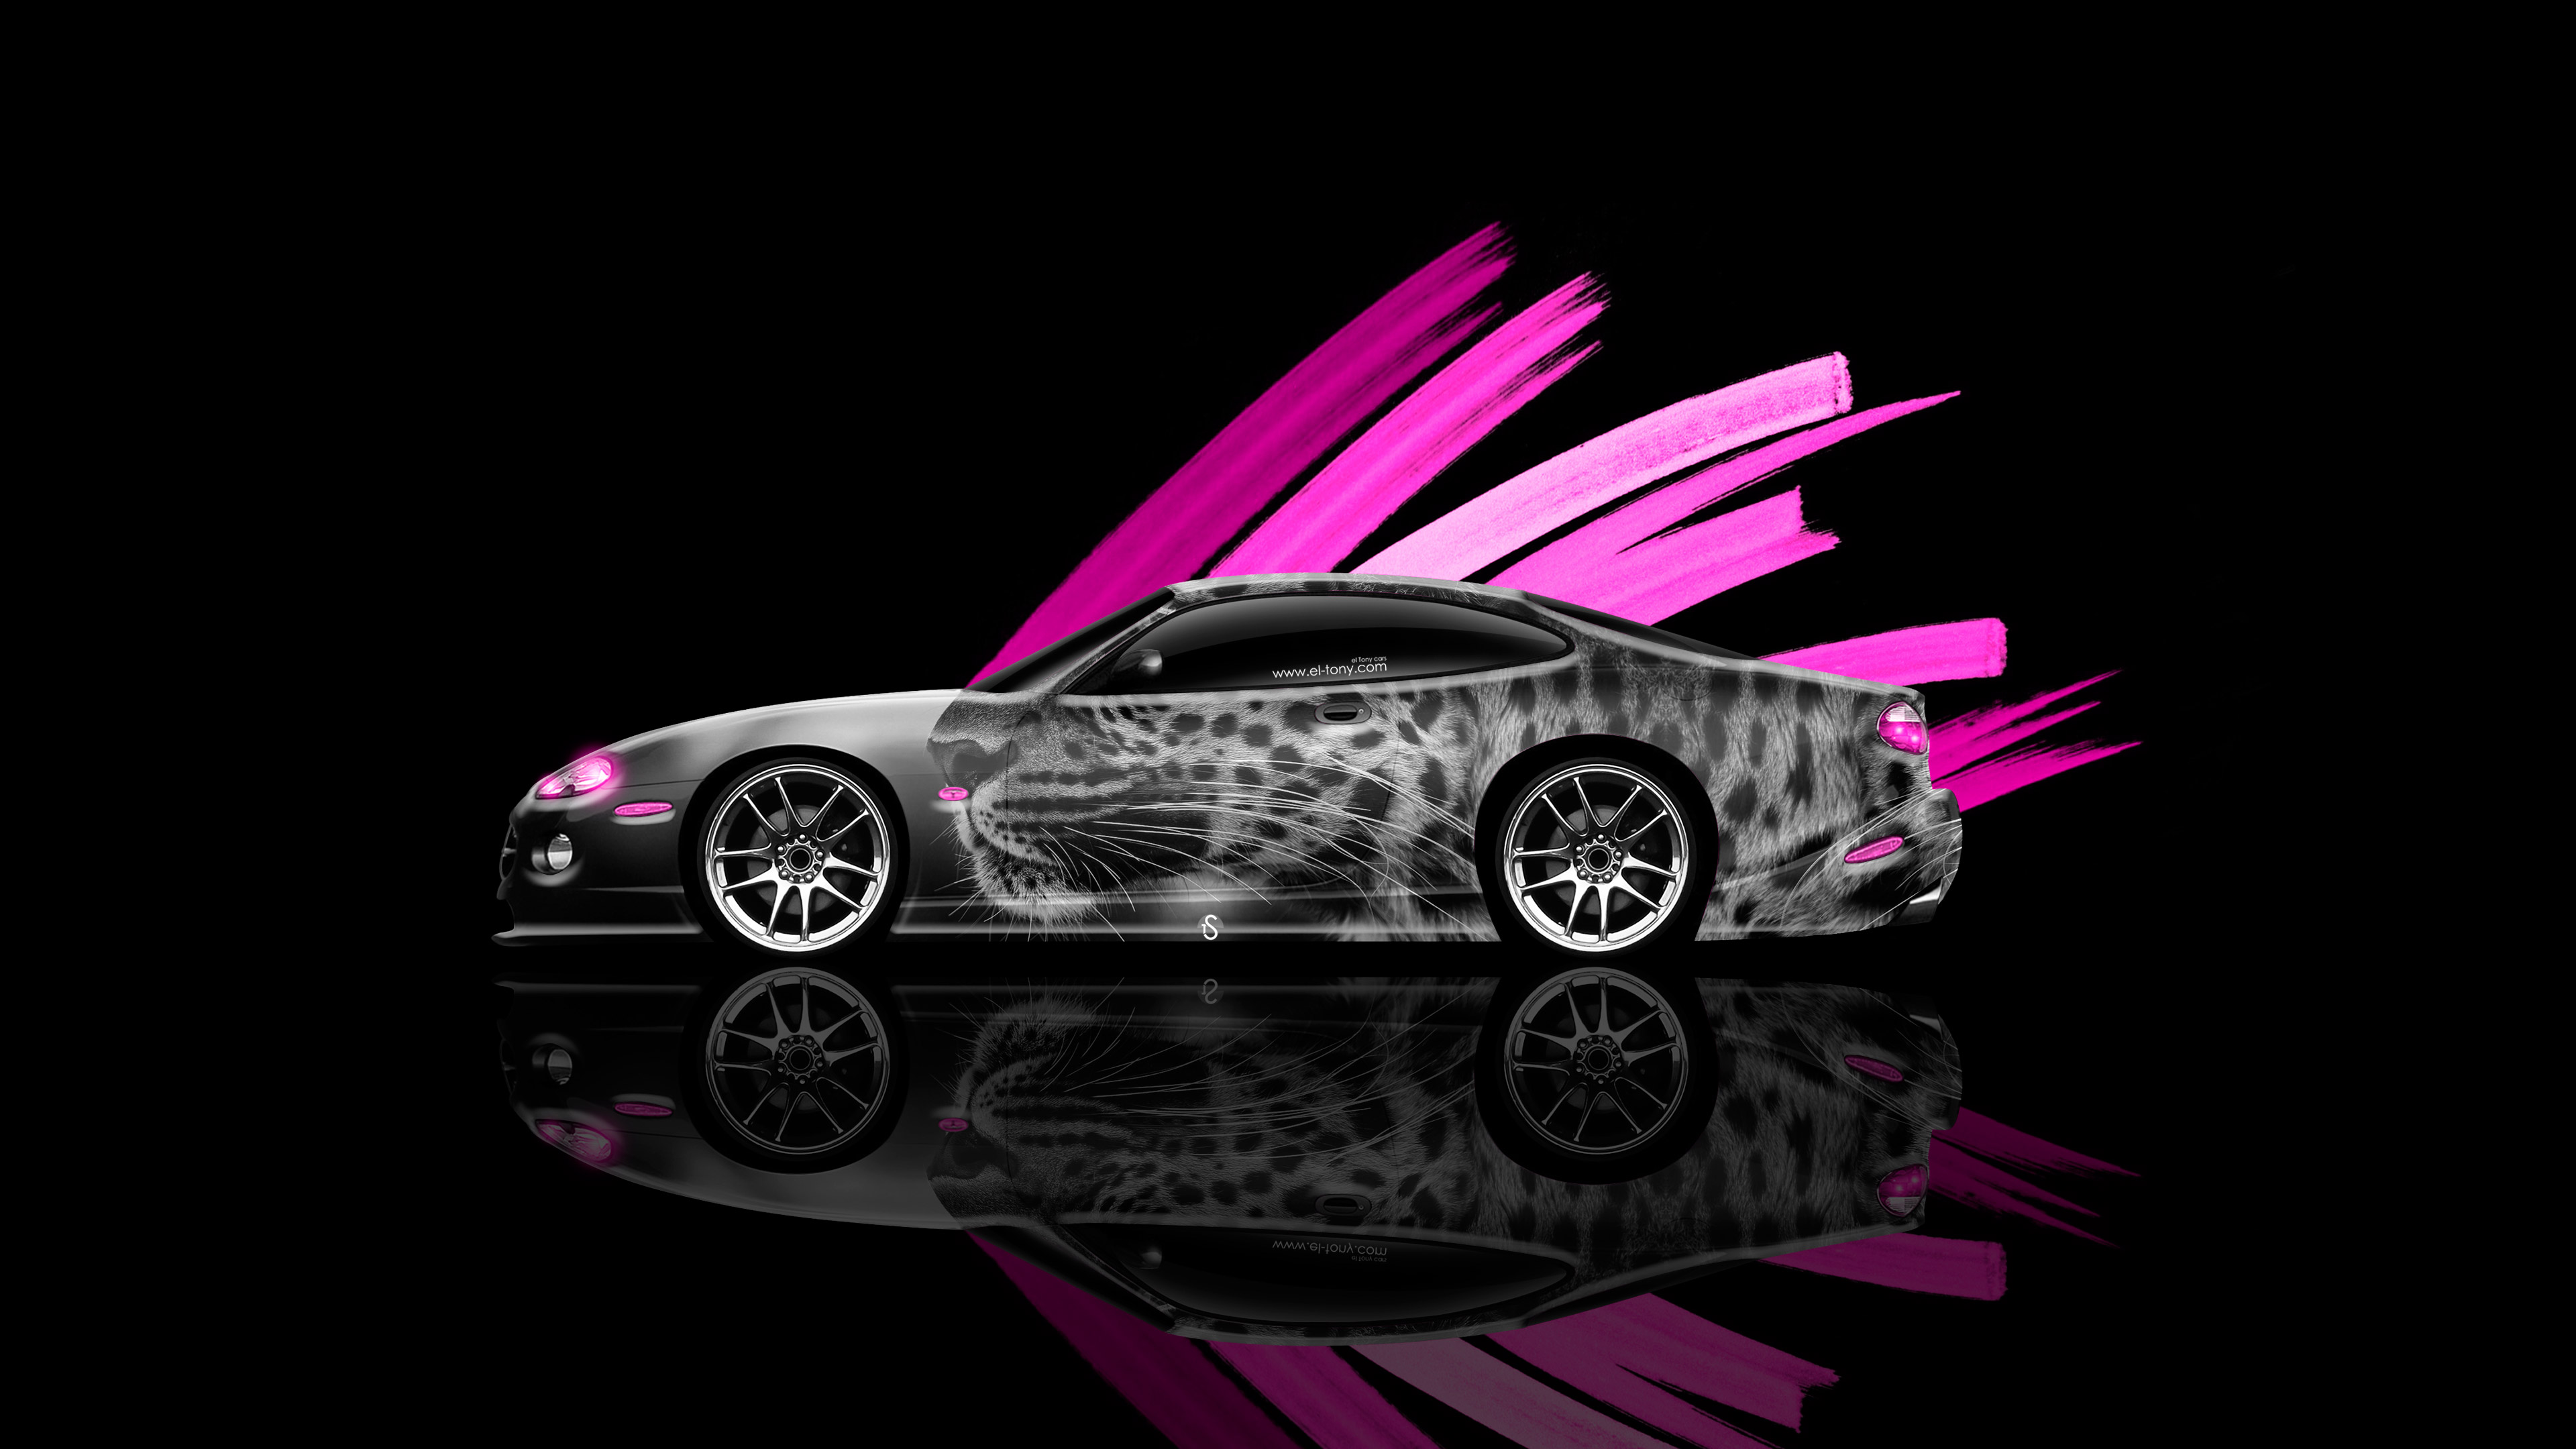 Jaguar Xk Coupe Side Animal Leopard Aerography Car Pink Effects K Wallpapers Design By Tony Kokhan Www El Tony Com on Honda Civic Jdm Coupe